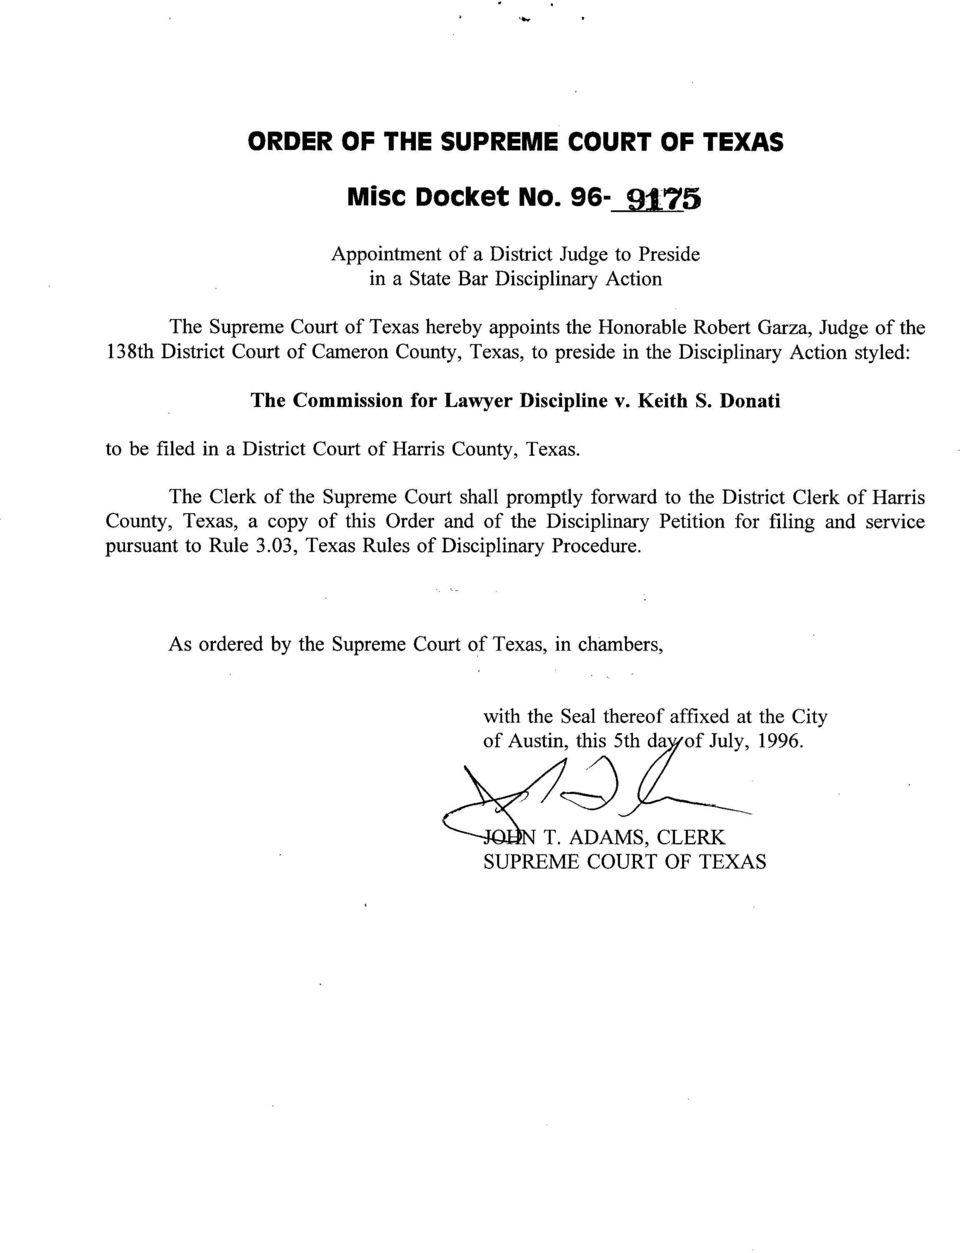 Cameron County, Texas, to preside in the Disciplinary Action styled: The Commission for Lawyer Discipline v. Keith S. Donati to be filed in a District Court of Harris County, Texas.